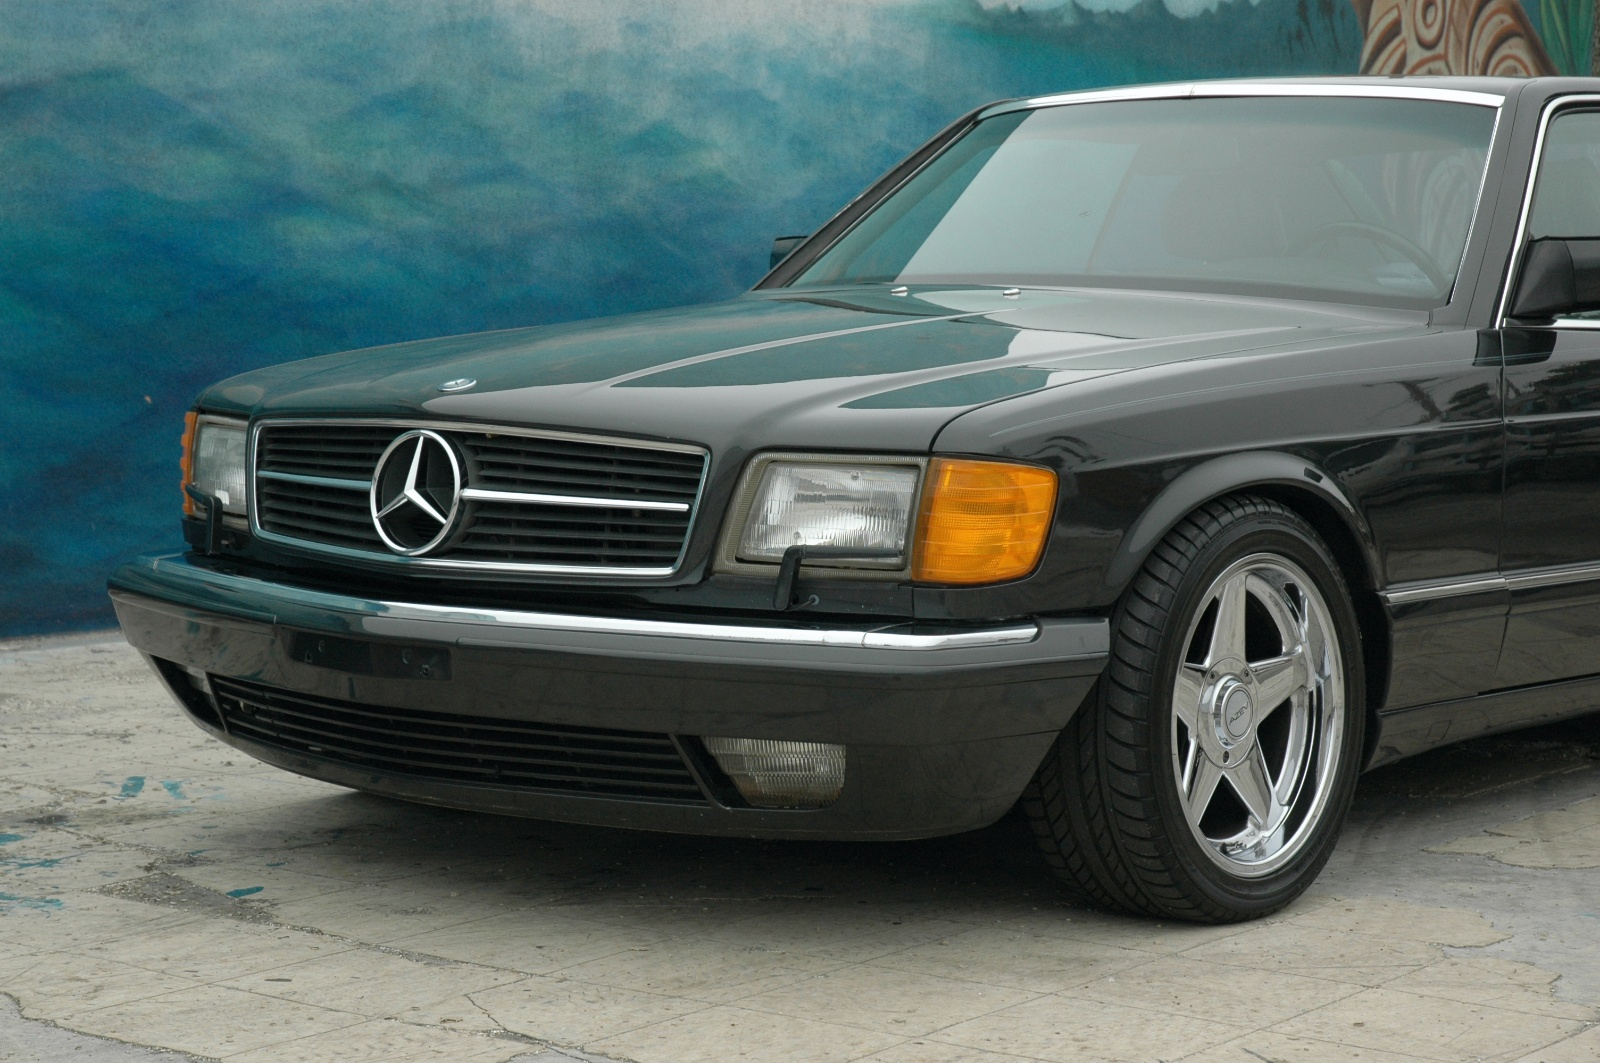 1990 mercedes benz 350 class information and photos zombiedrive. Black Bedroom Furniture Sets. Home Design Ideas